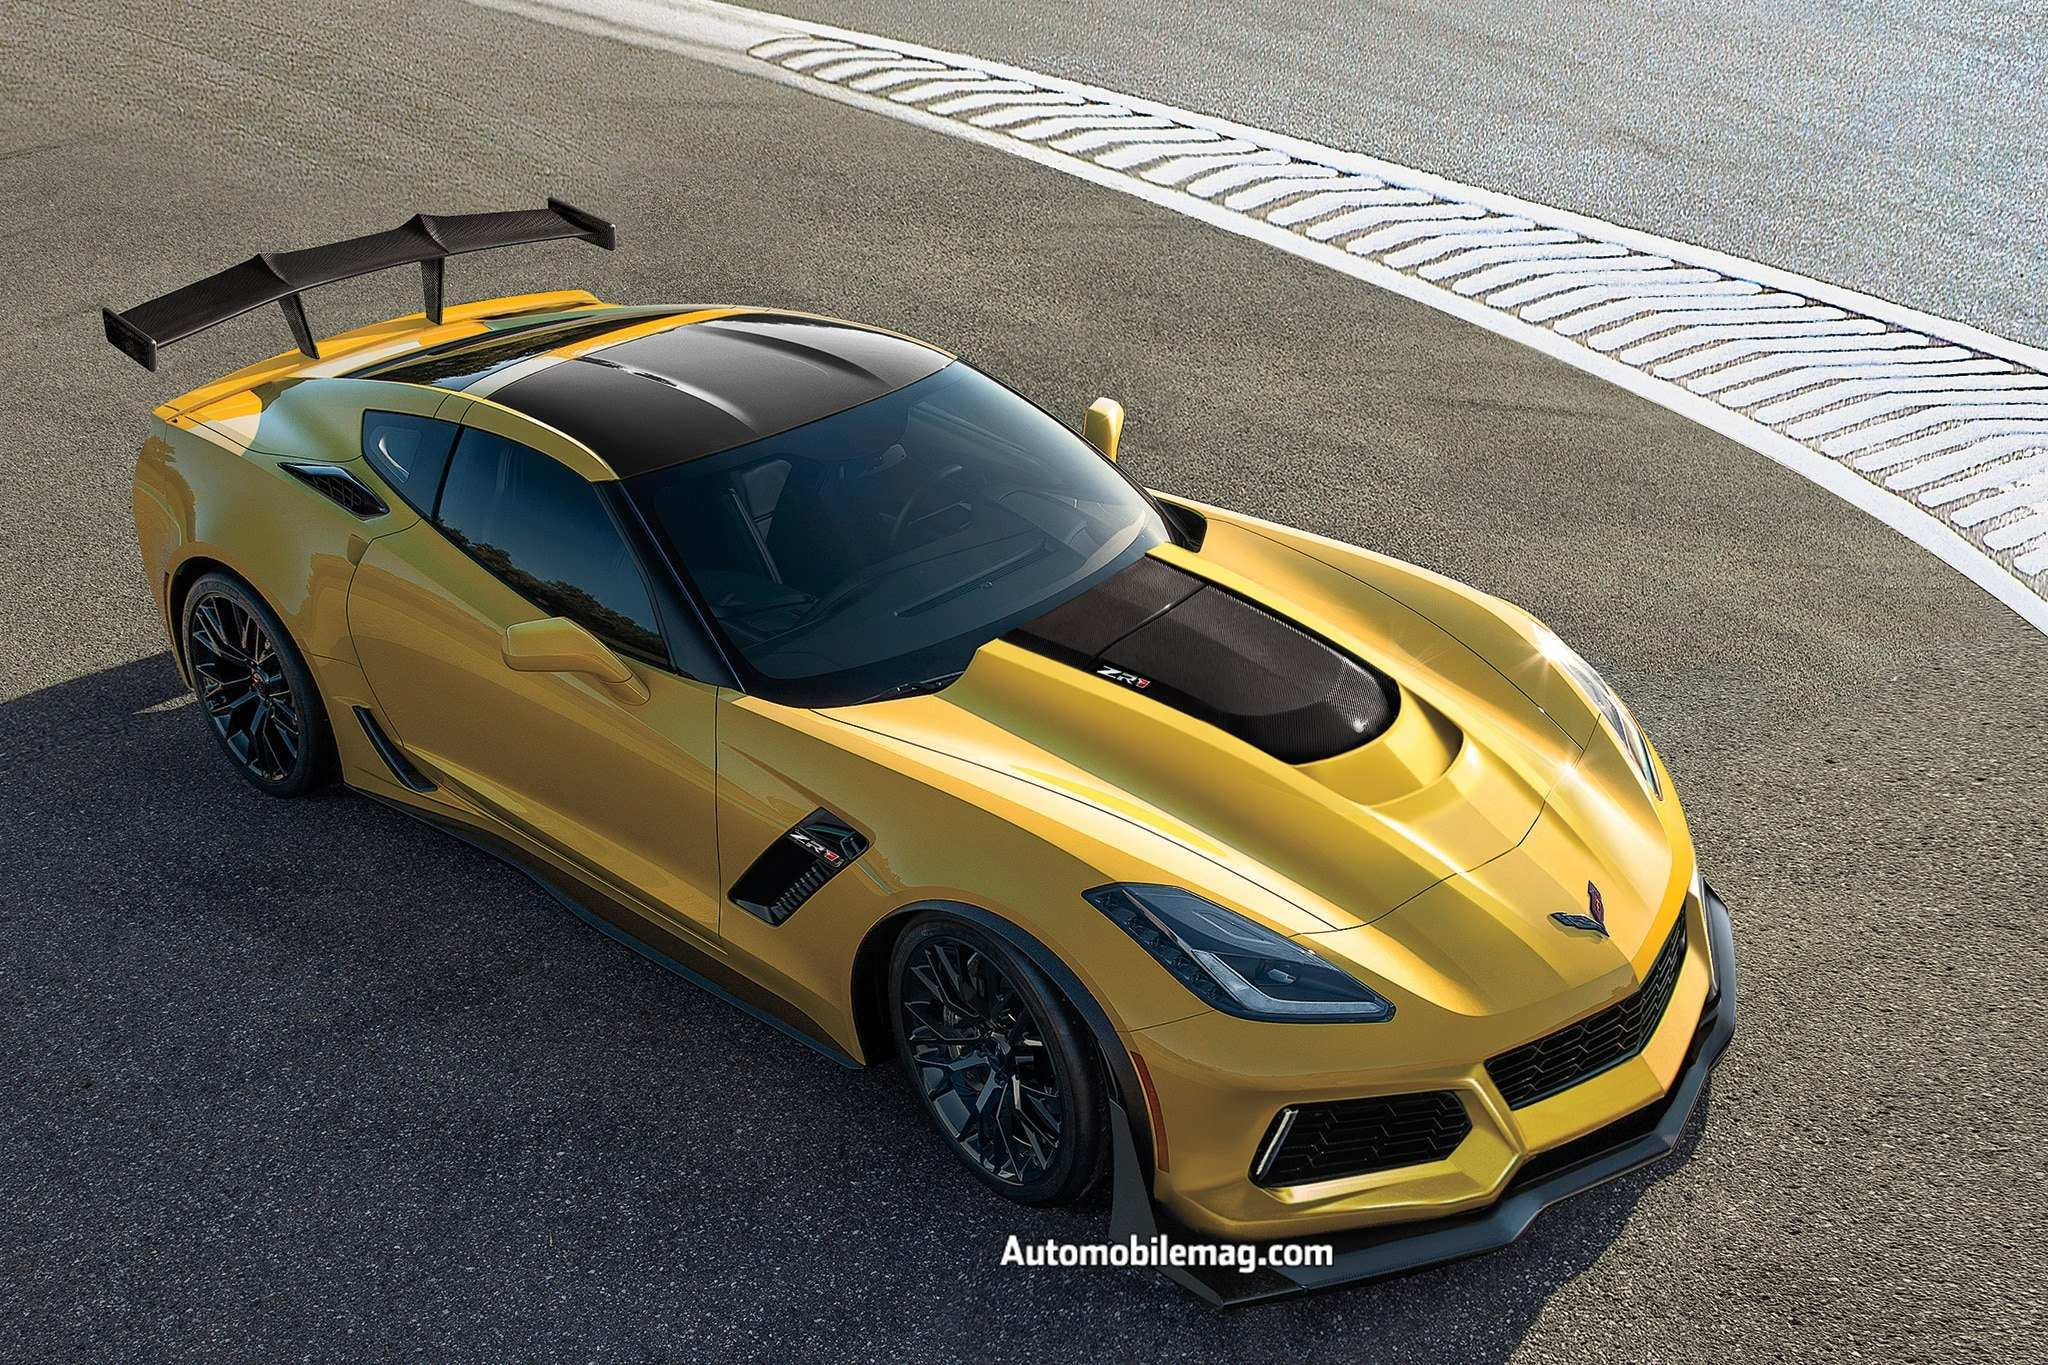 77 Gallery of 2020 Chevy Corvette Zora Zr1 New Review for 2020 Chevy Corvette Zora Zr1